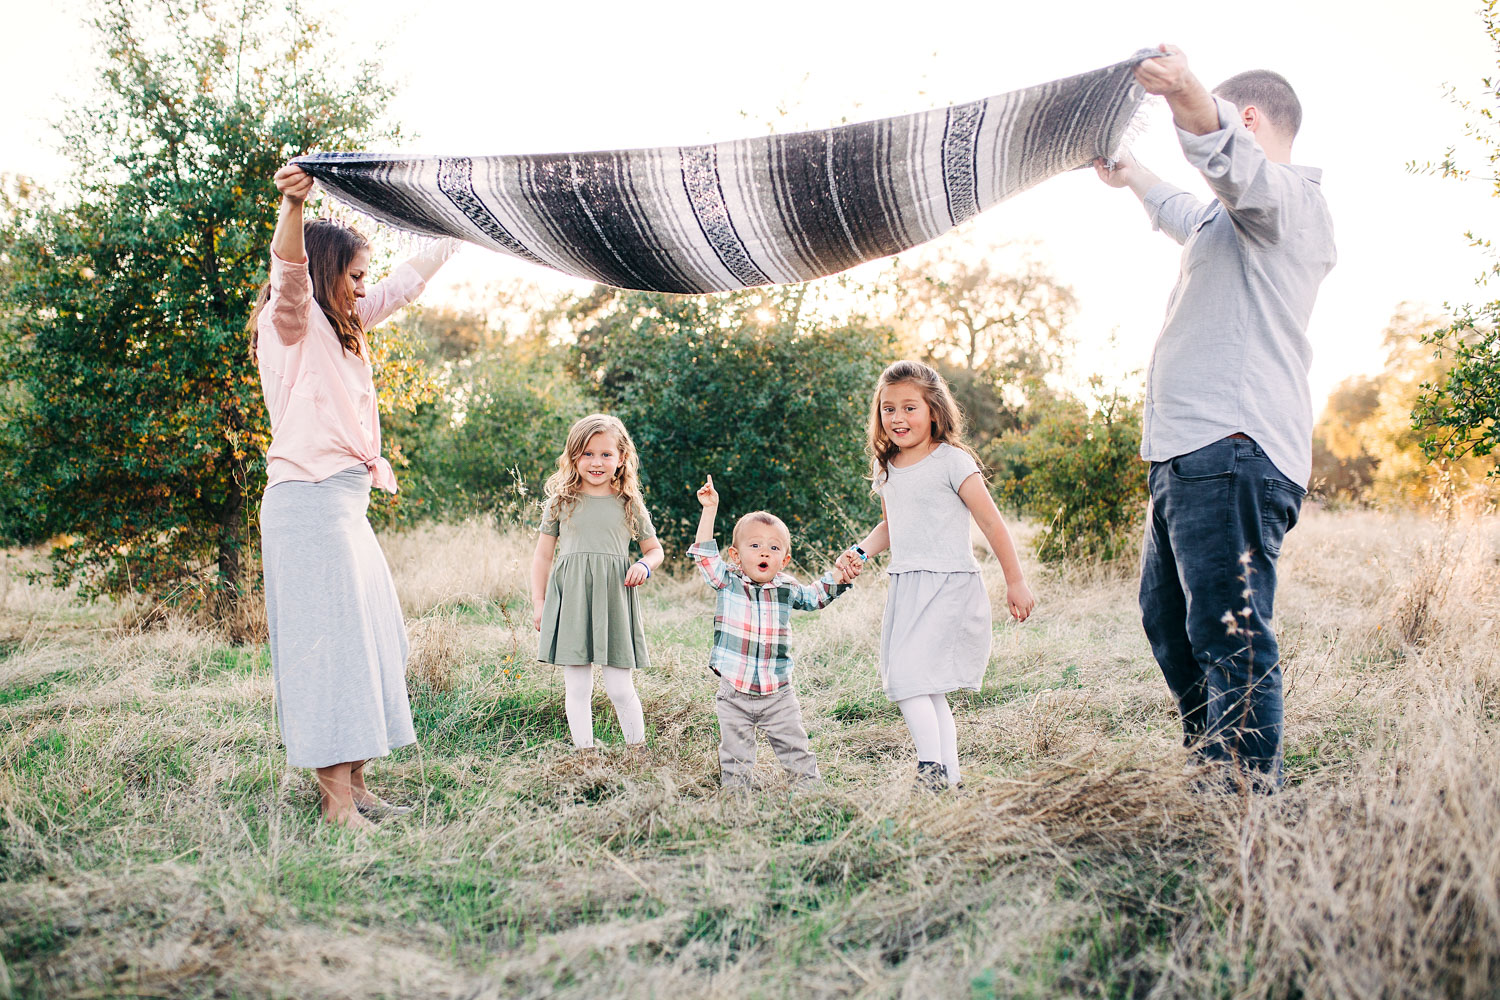 Three children run under a blanket that their parents are holding during a fun filled family photo session with Amy Wright Photography in Roseville, California.